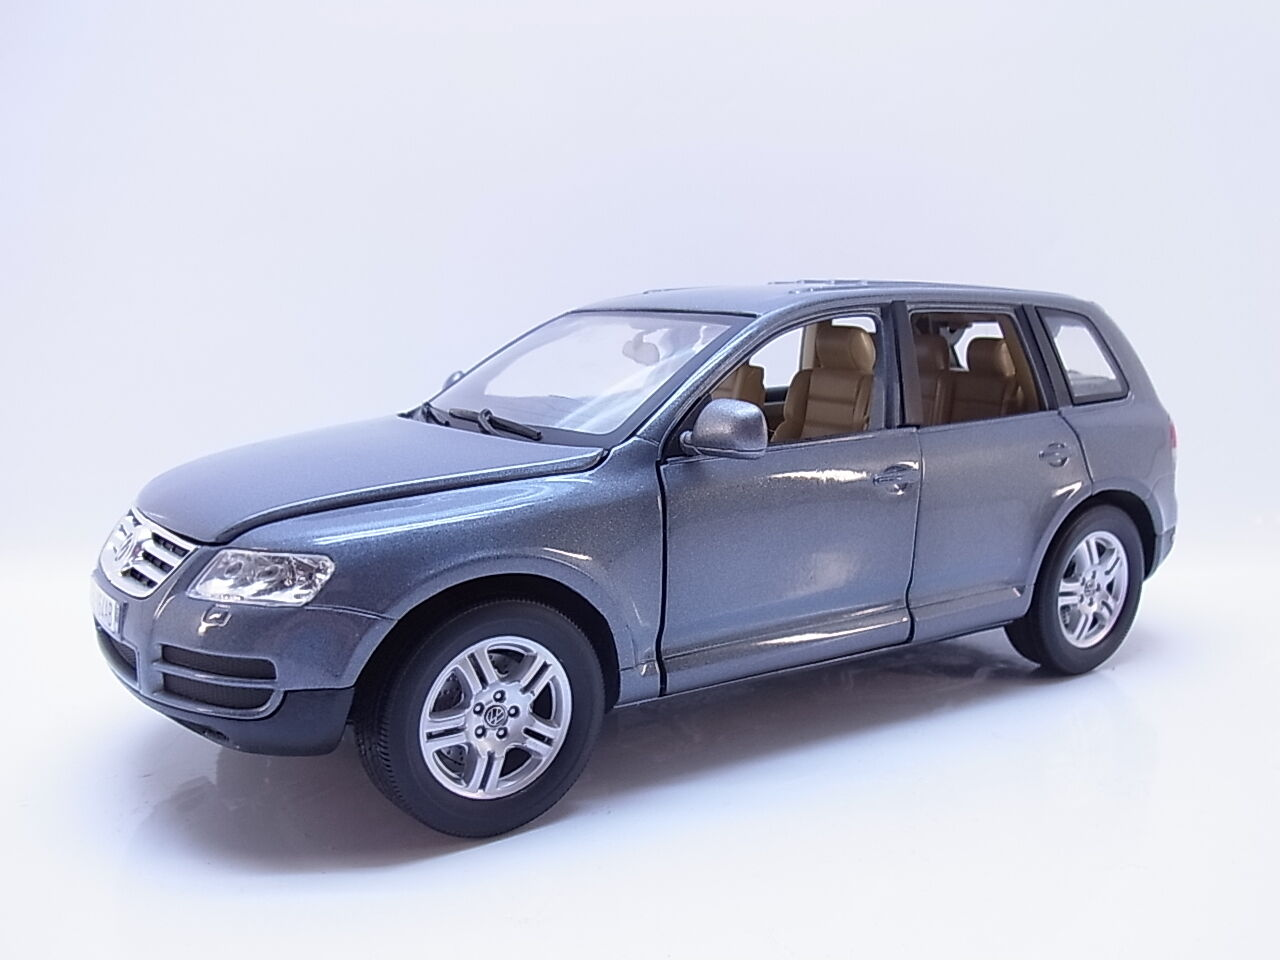 45123   Burago VW Touareg I (7l) SUV SUV 2002–2010 Grey 1 18 Model Car